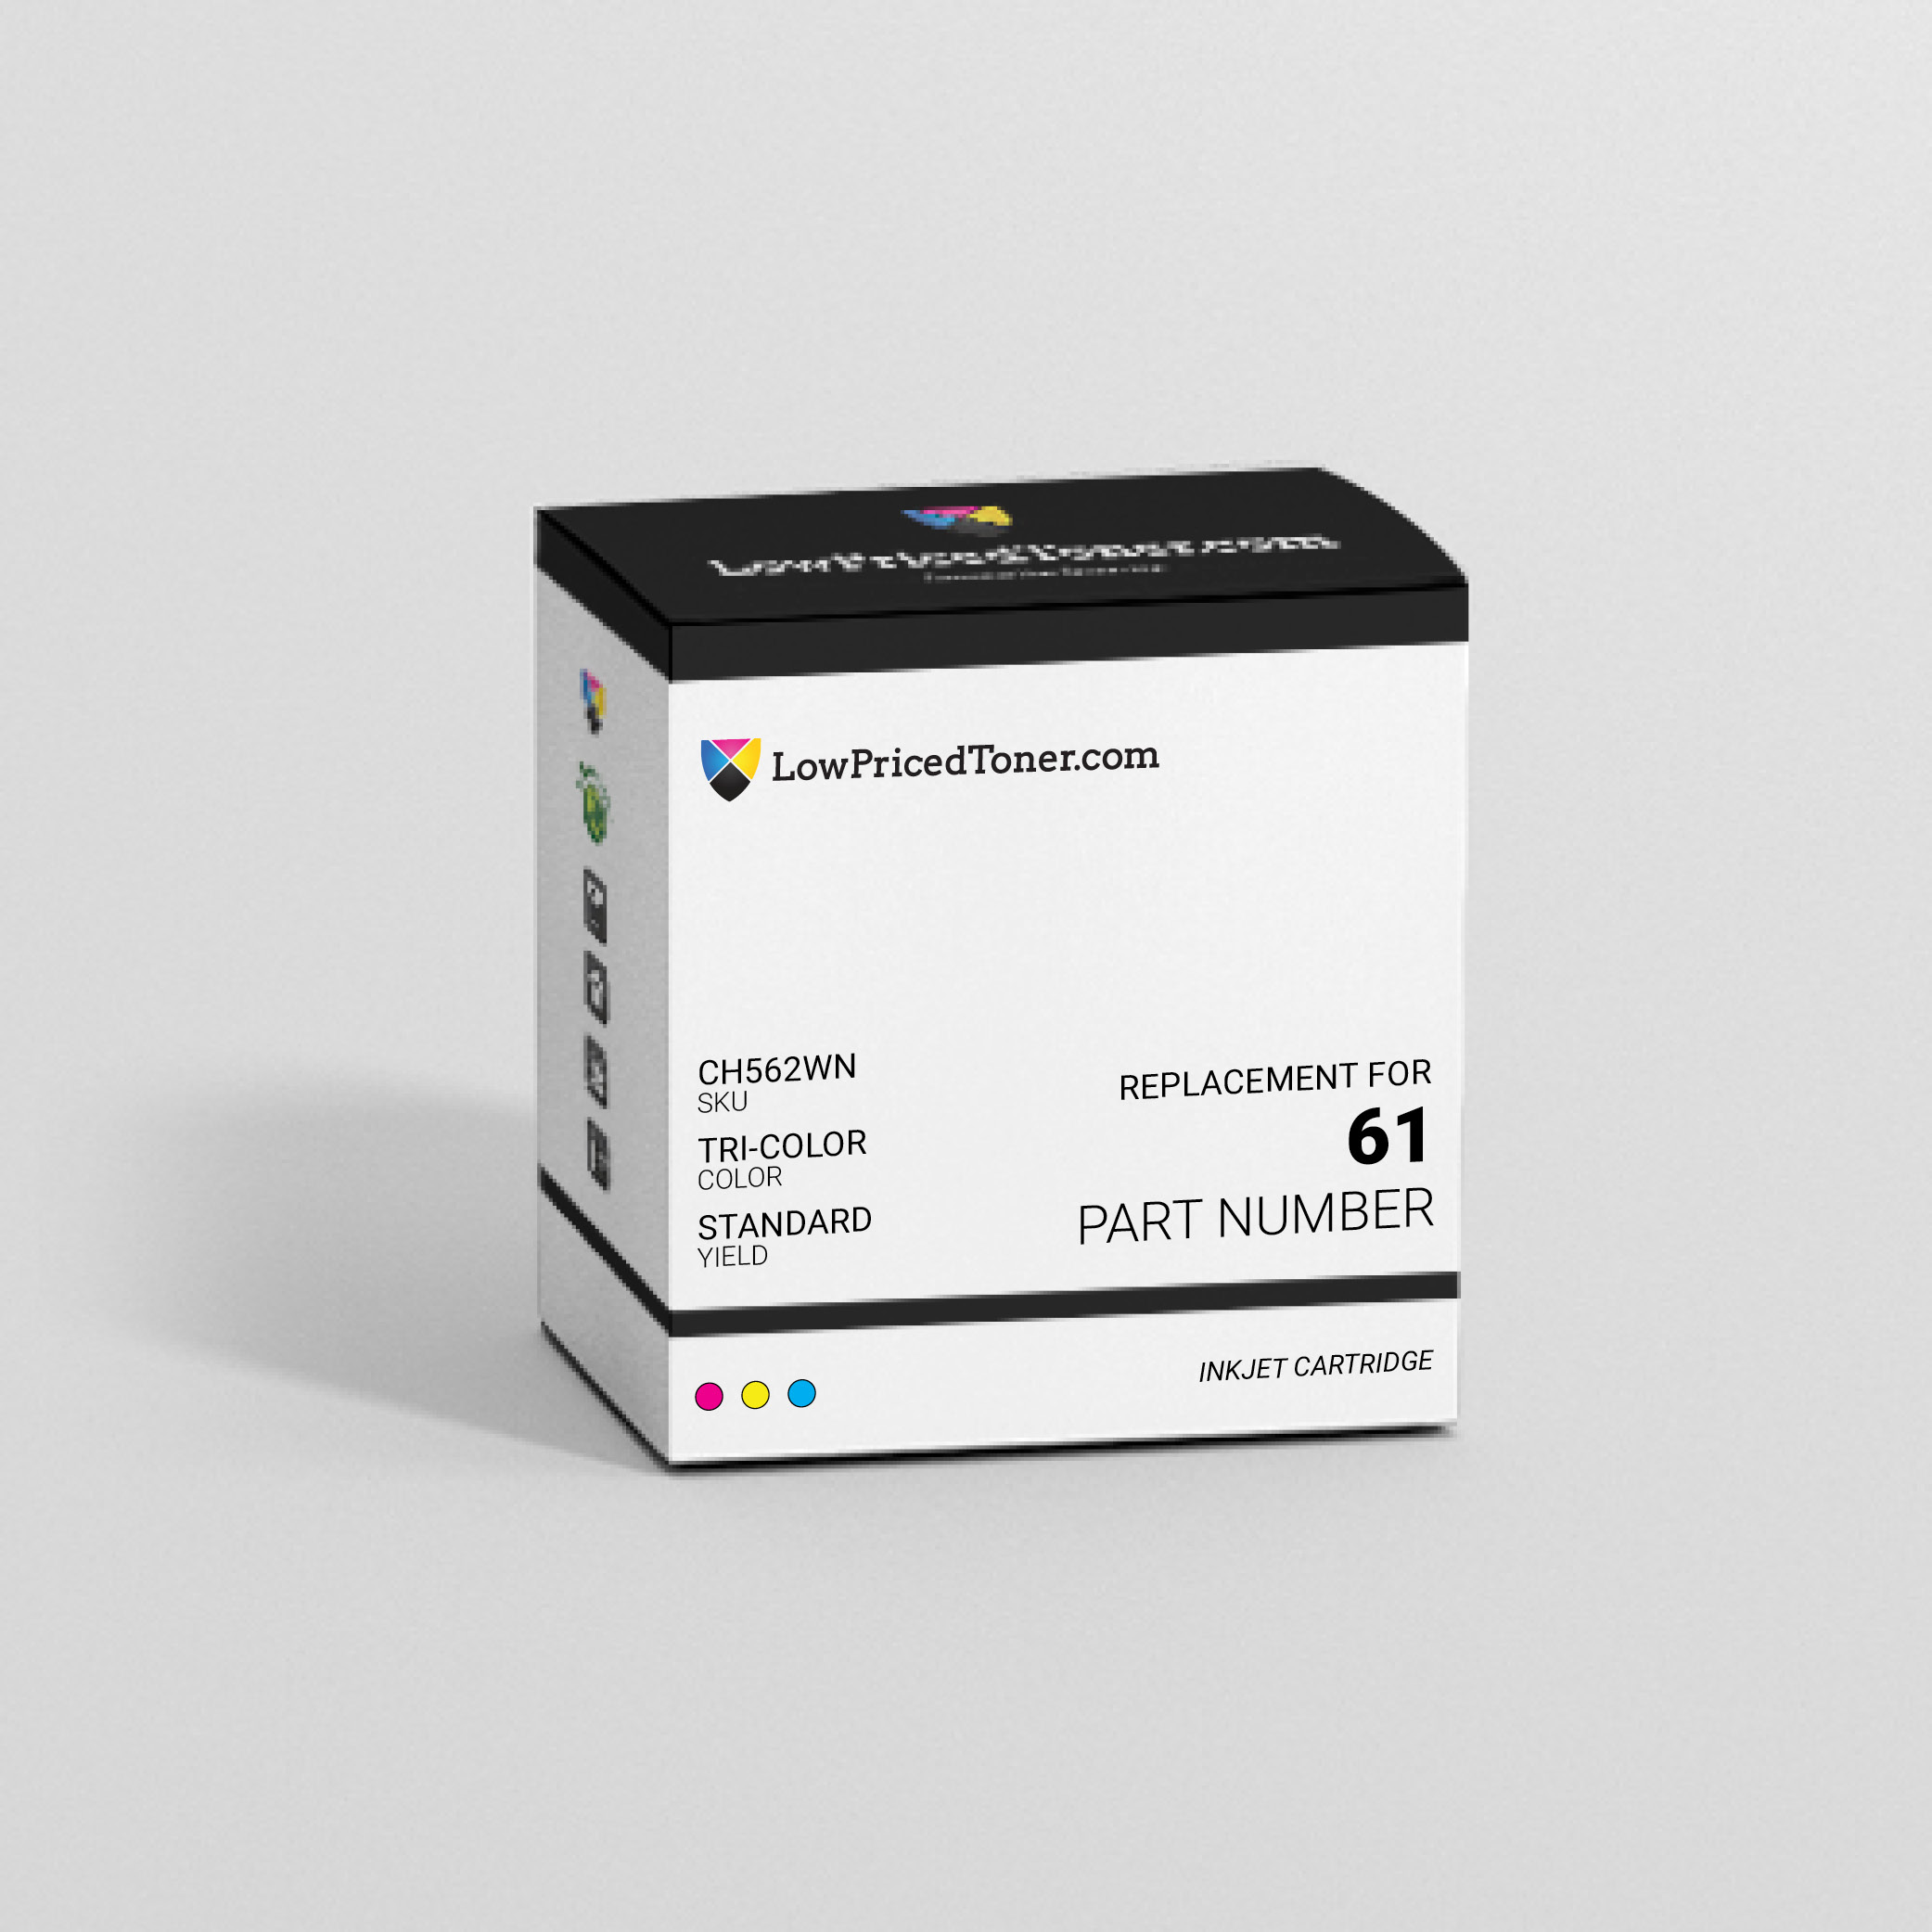 HP CH562WN 61 Remanufactured TriColor Ink Cartridge